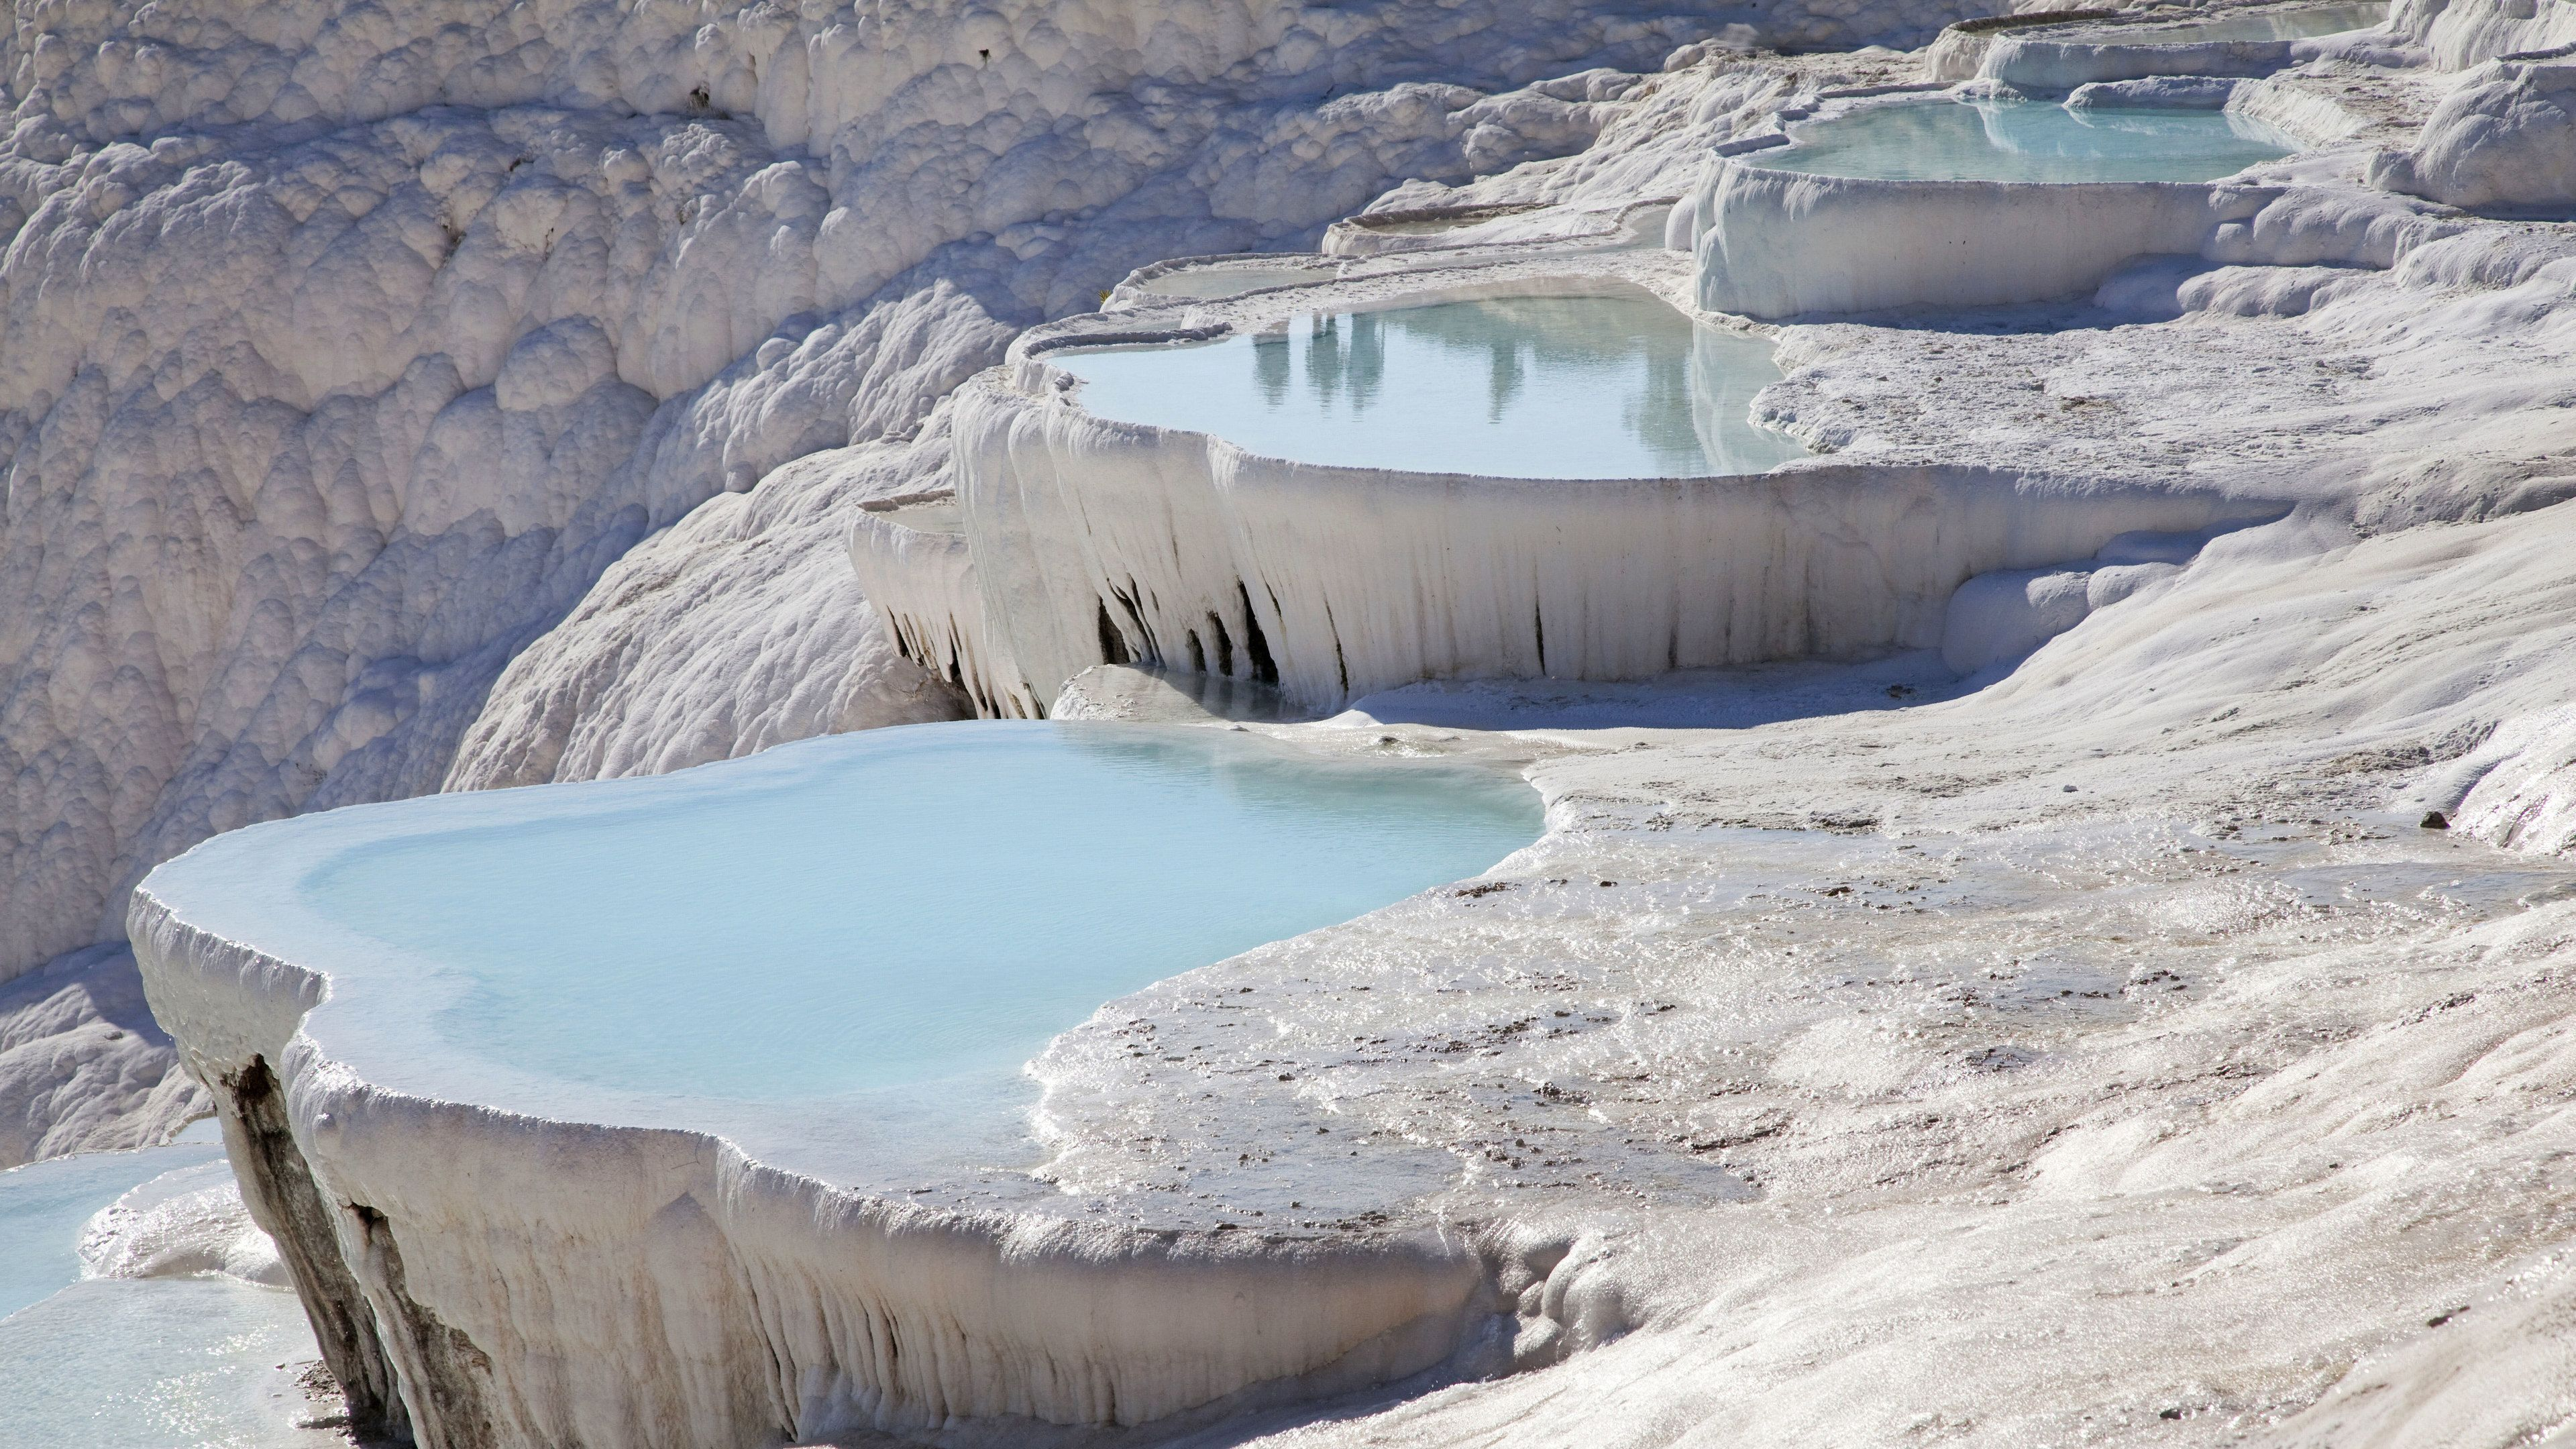 Multi-level hot spring pools in Pamukkale